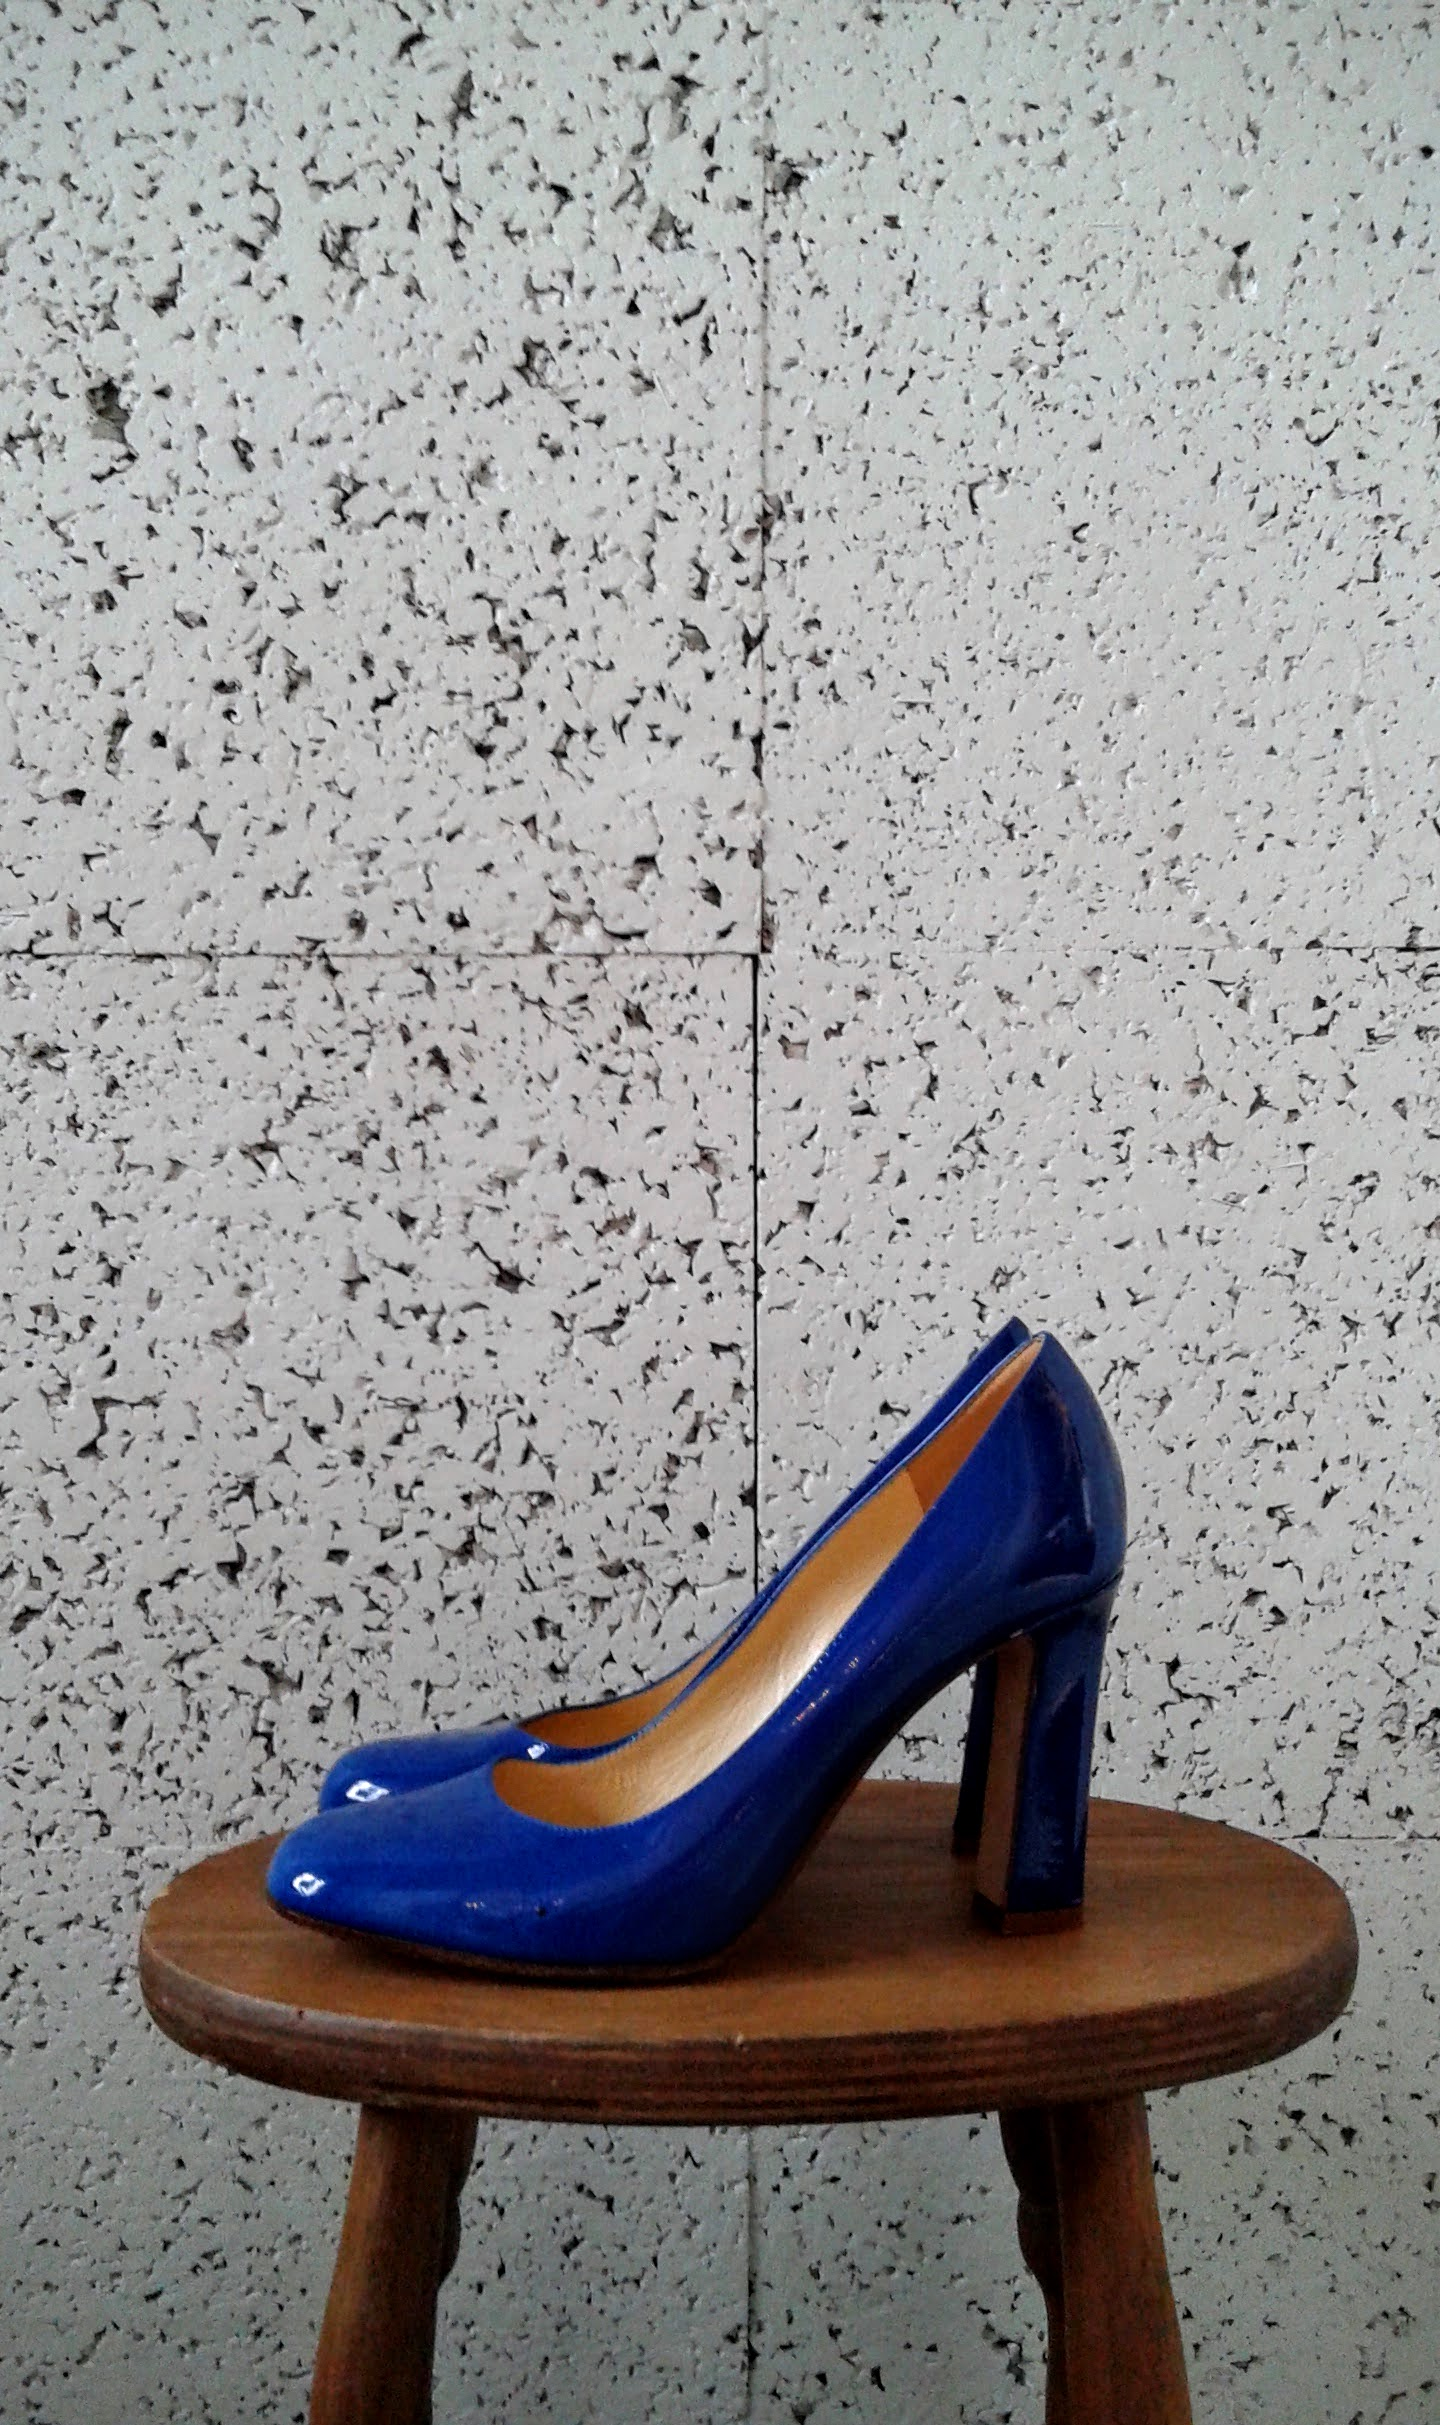 Kate Spade shoes; S7.5, $130